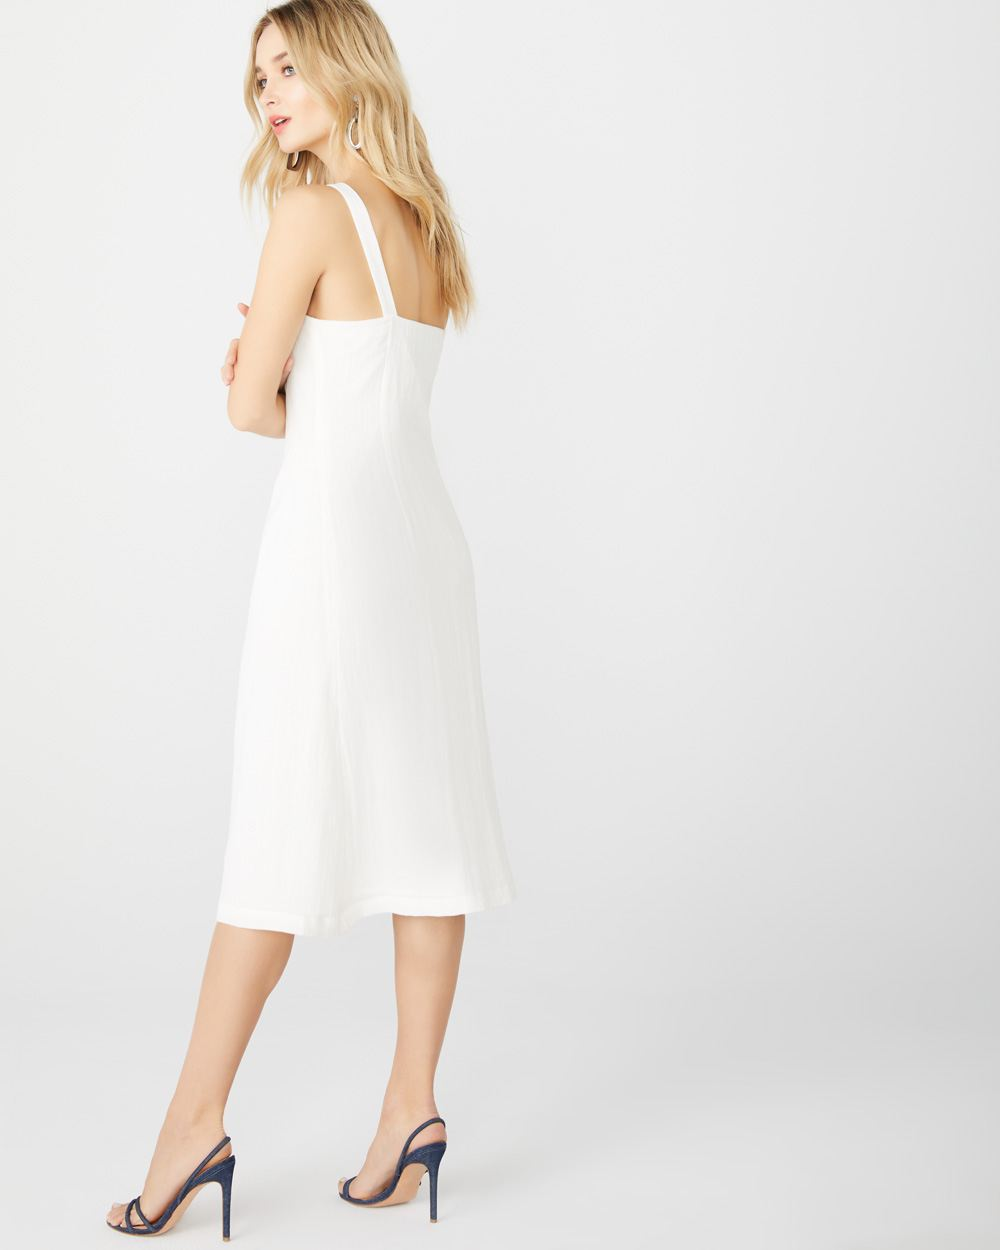 White Midi dress with buttons